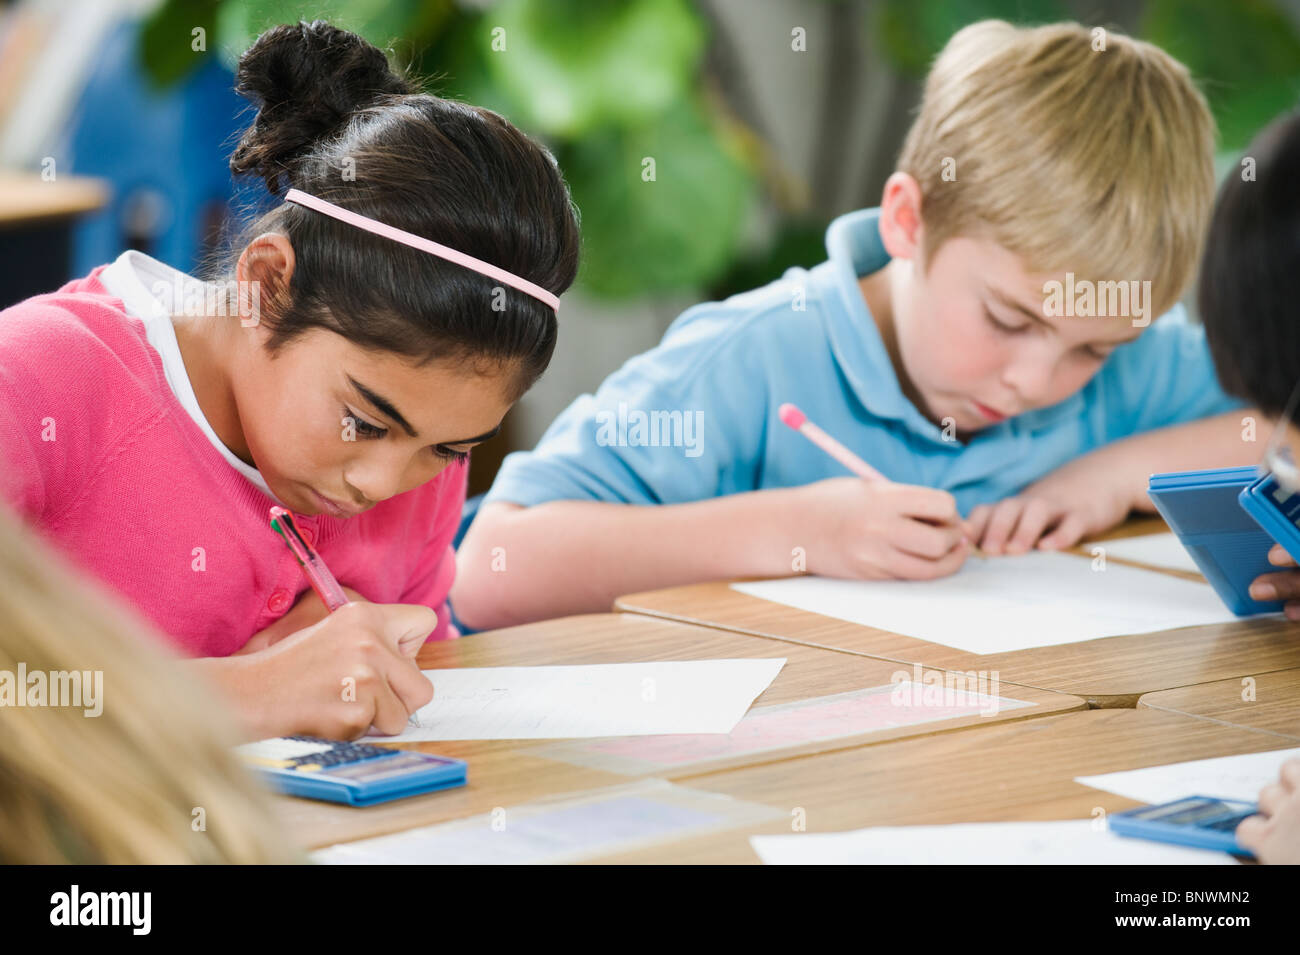 Students doing math work in classroom Stock Photo: 30683214 - Alamy